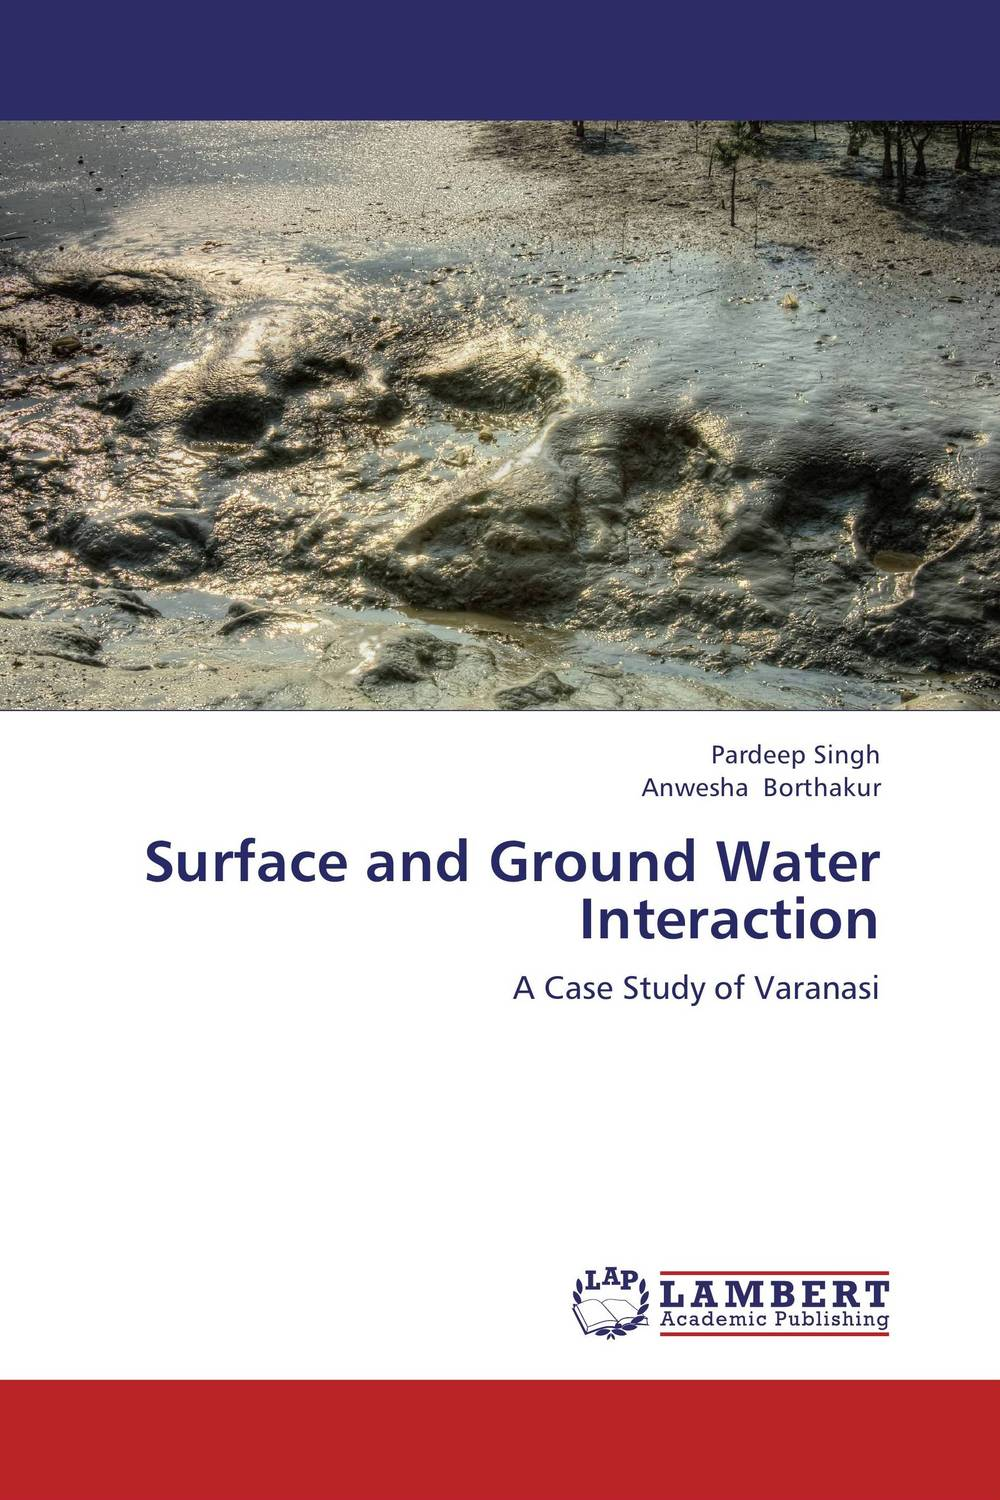 Surface and Ground Water Interaction крышка стеклянная swiss diamond zz009279